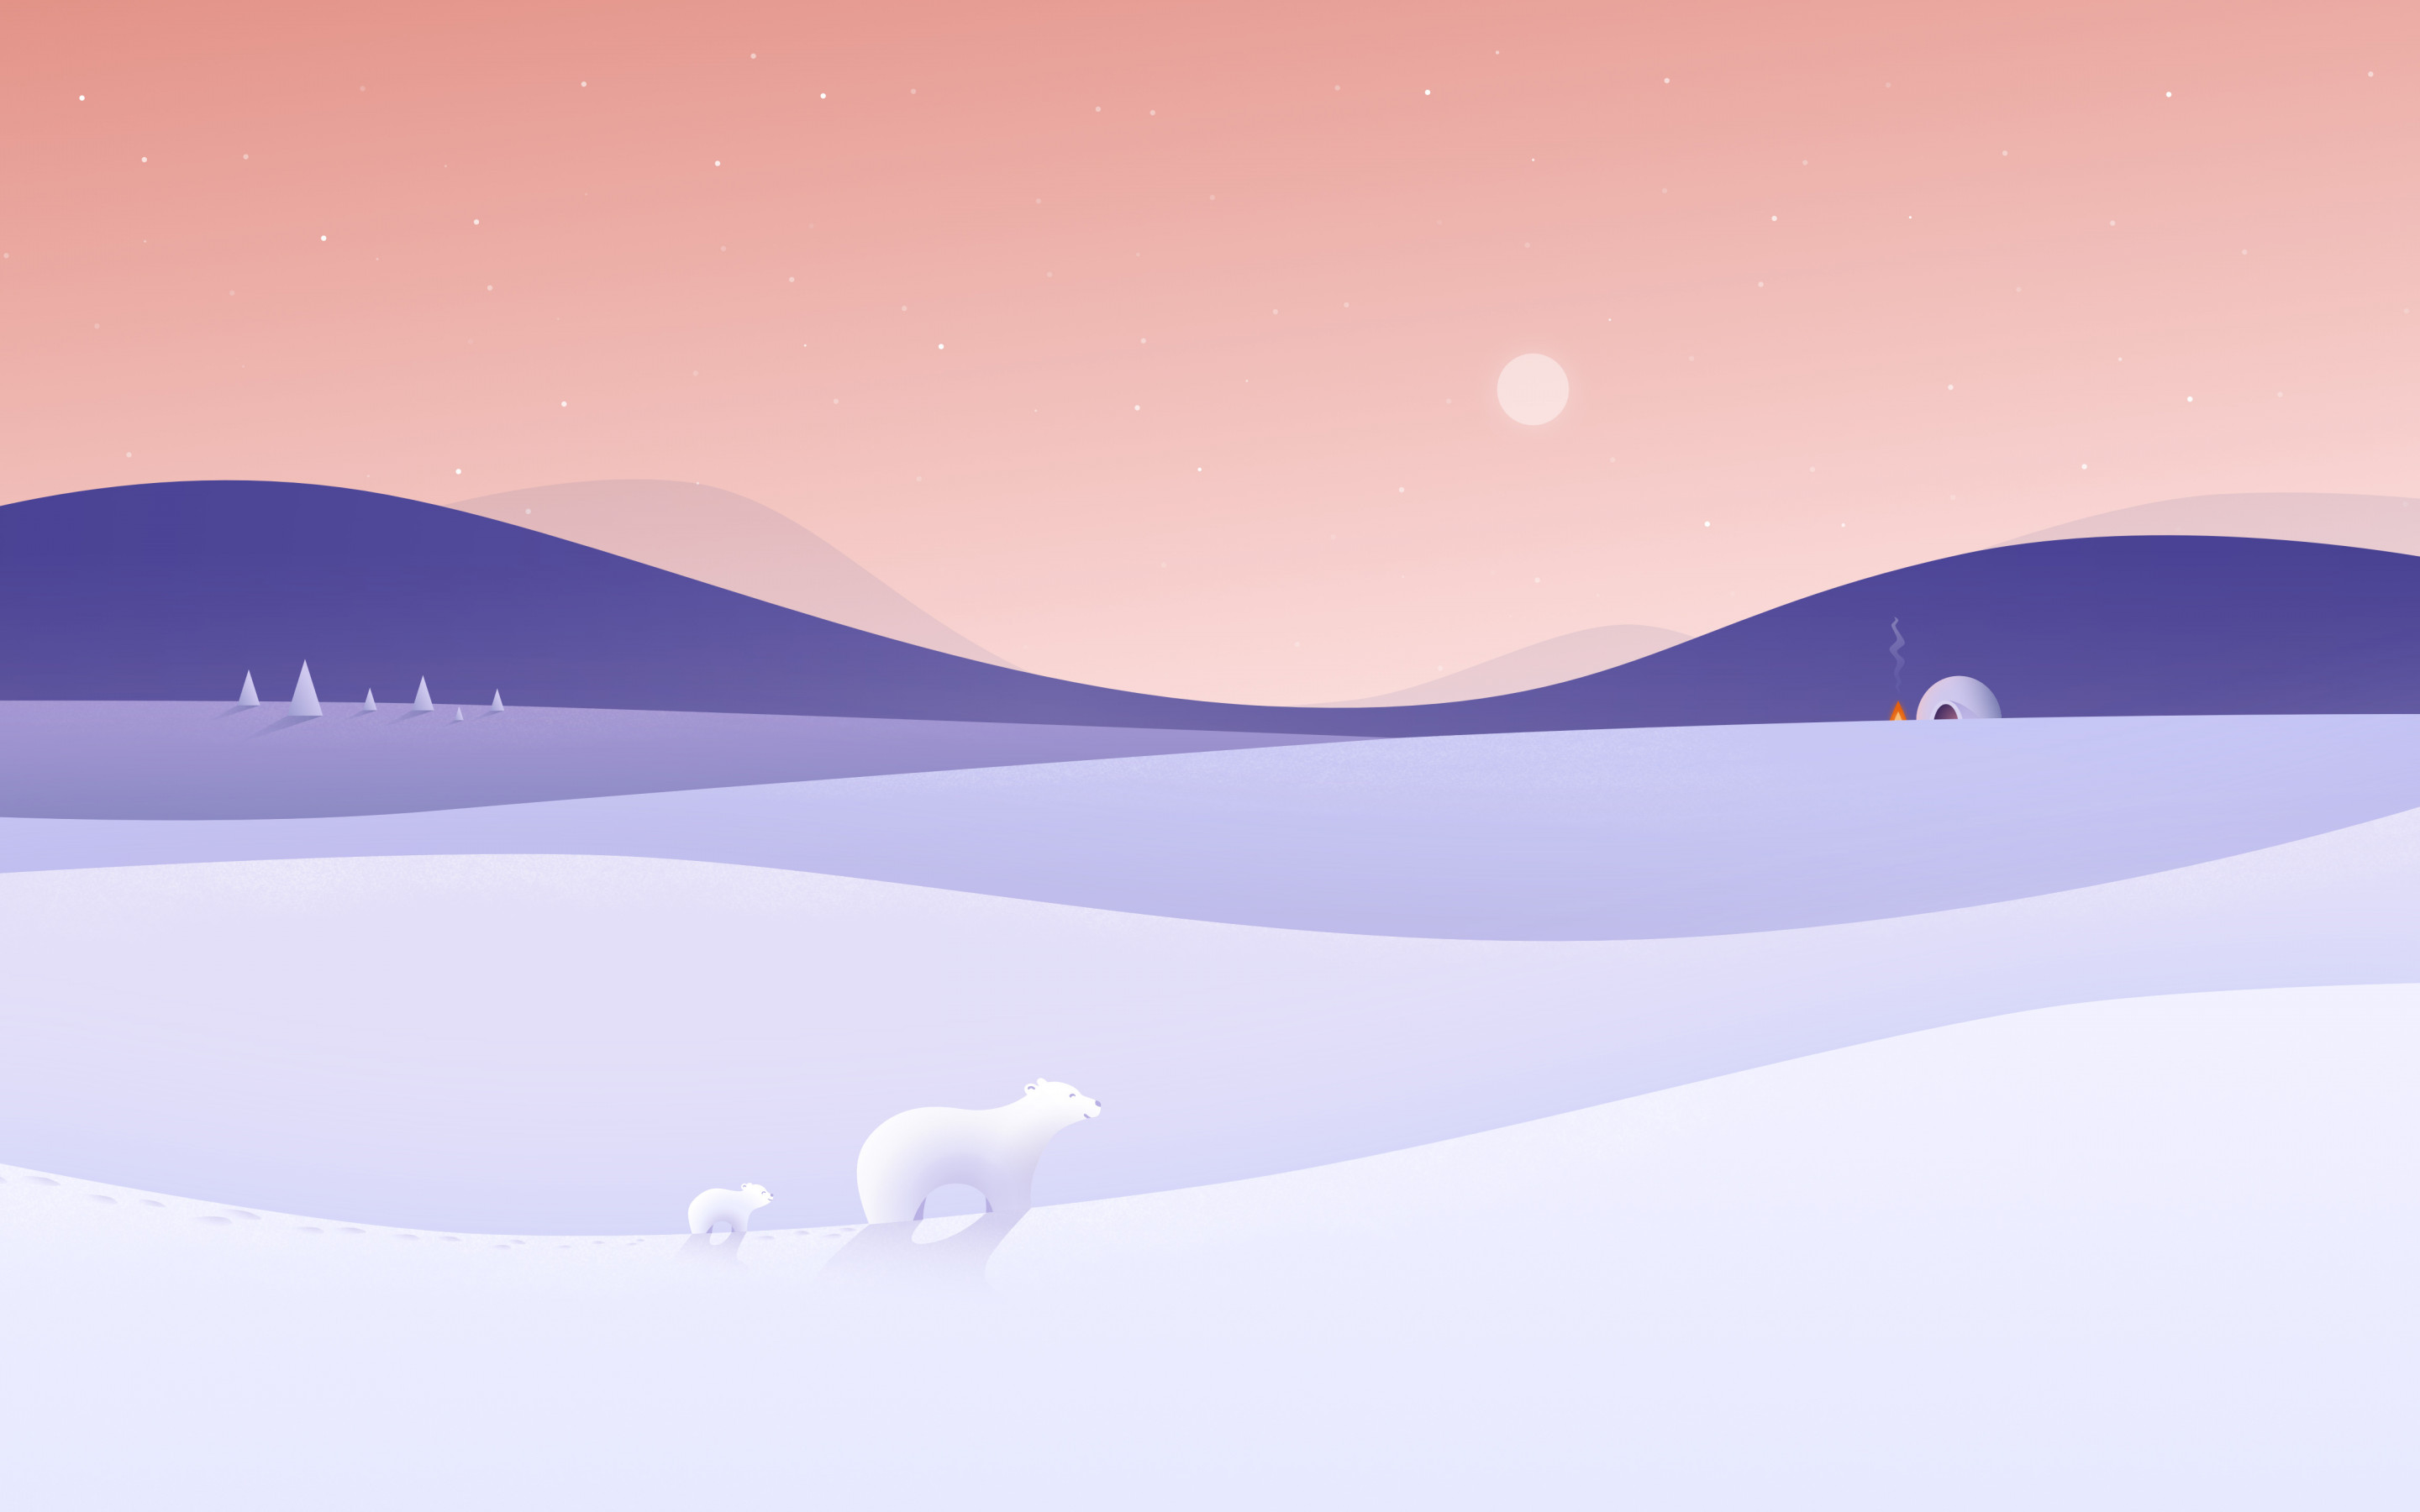 Polar bears illustration wallpaper 2880x1800